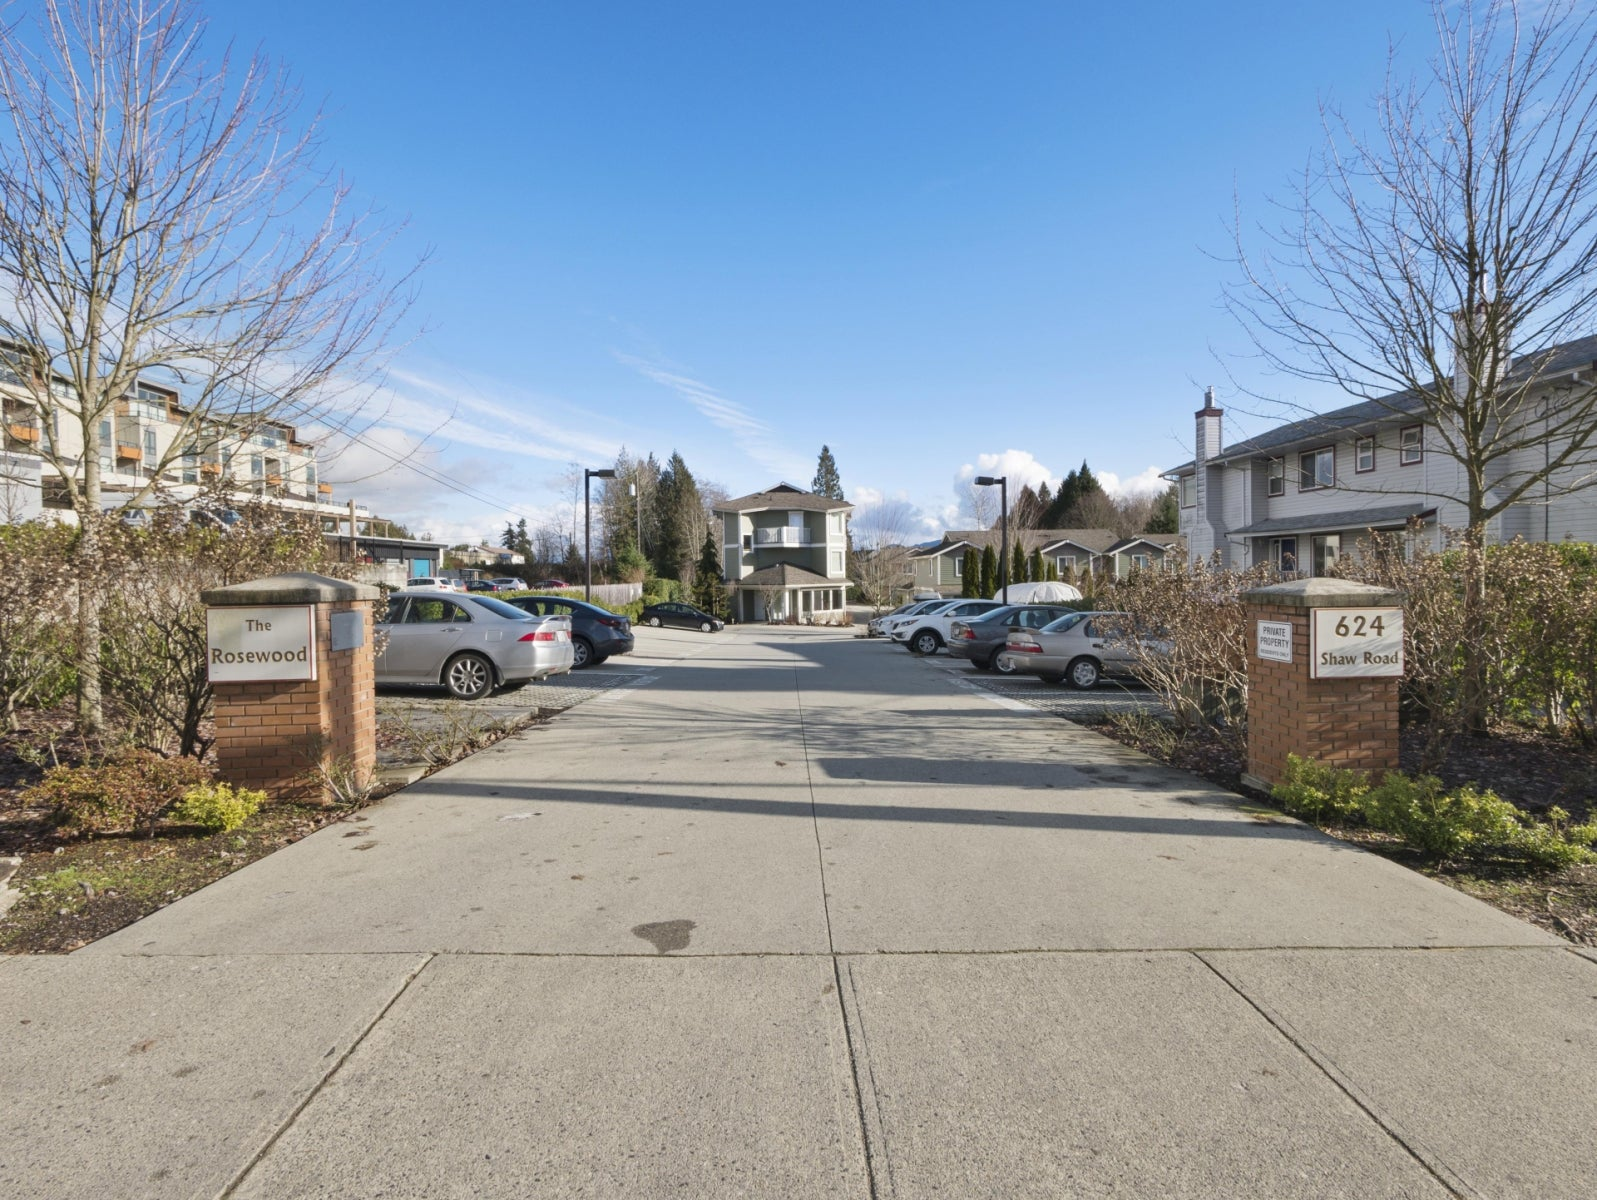 11 624 SHAW ROAD - Gibsons & Area Townhouse for sale, 3 Bedrooms (R2234910) #20